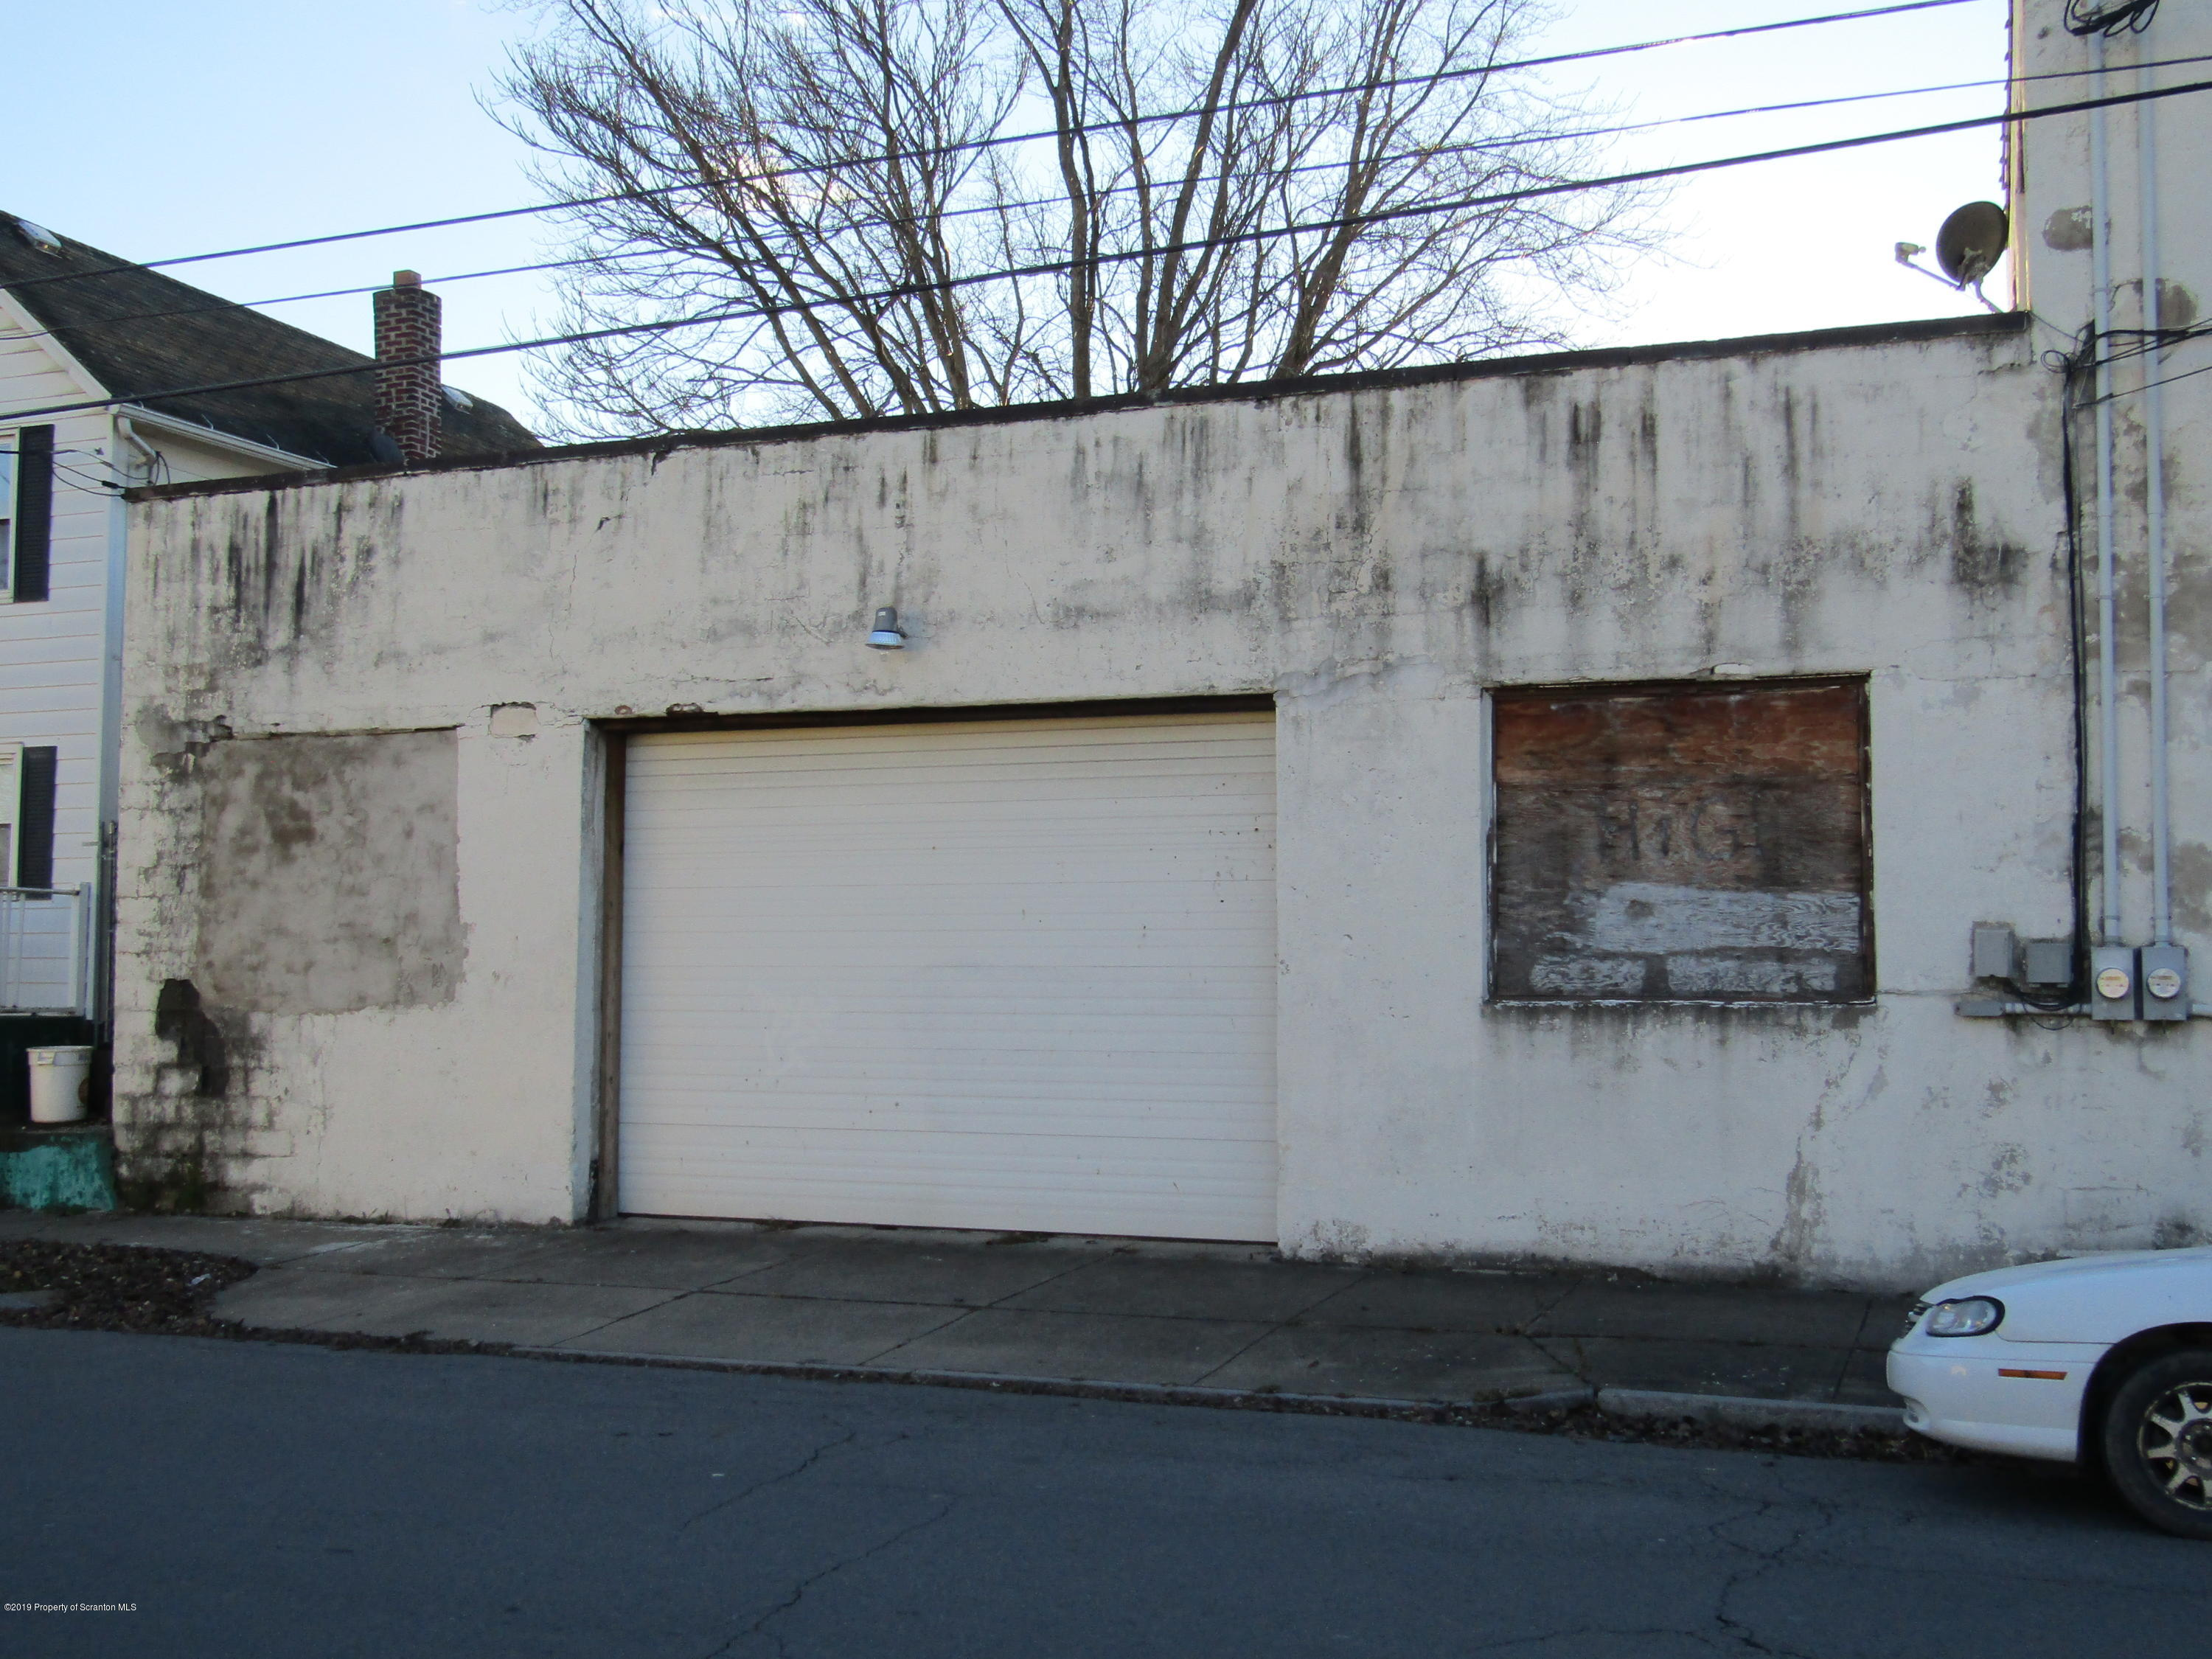 97 Wyoming, Wilkes-Barre, Pennsylvania 18702, ,2 BathroomsBathrooms,Commercial,For Sale,Wyoming,19-59